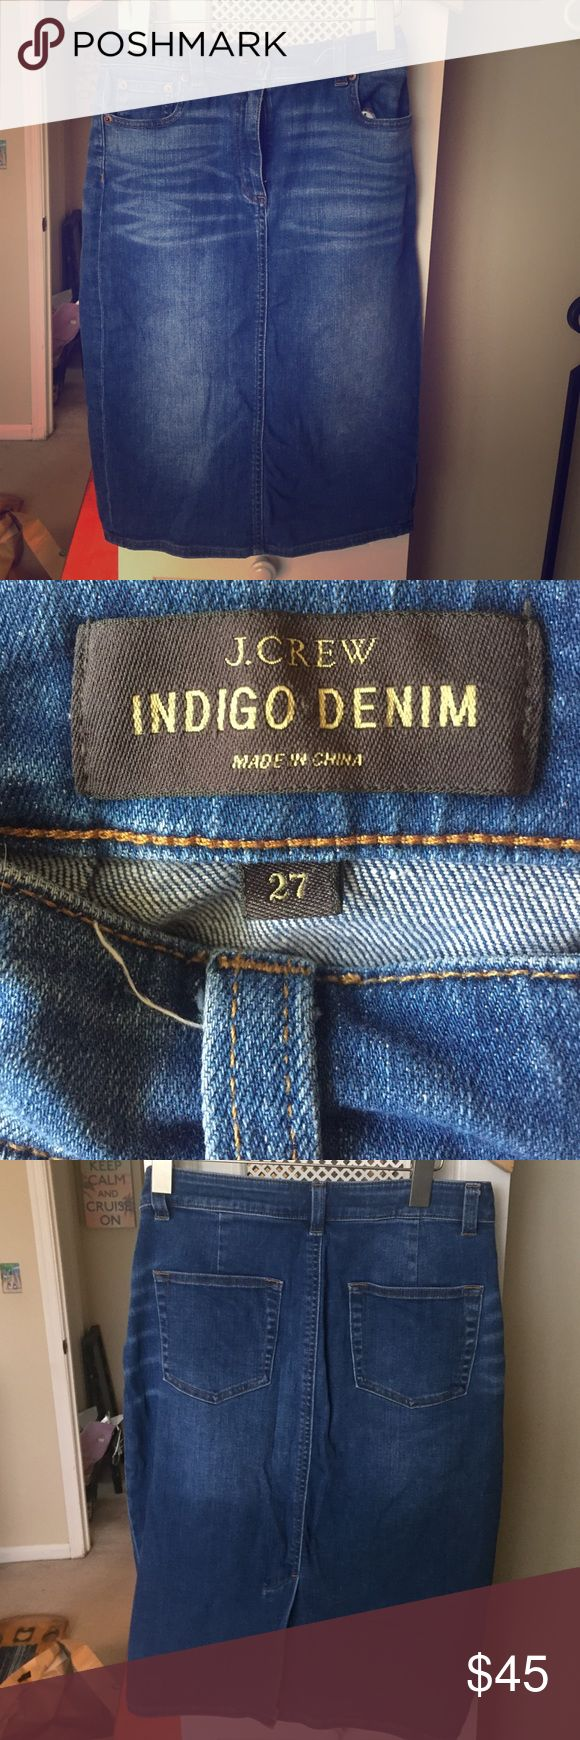 J Crew indigo denim knee length jean skirt J Crew jean skirt that fits comfortably and in great condition. J. Crew Skirts Pencil